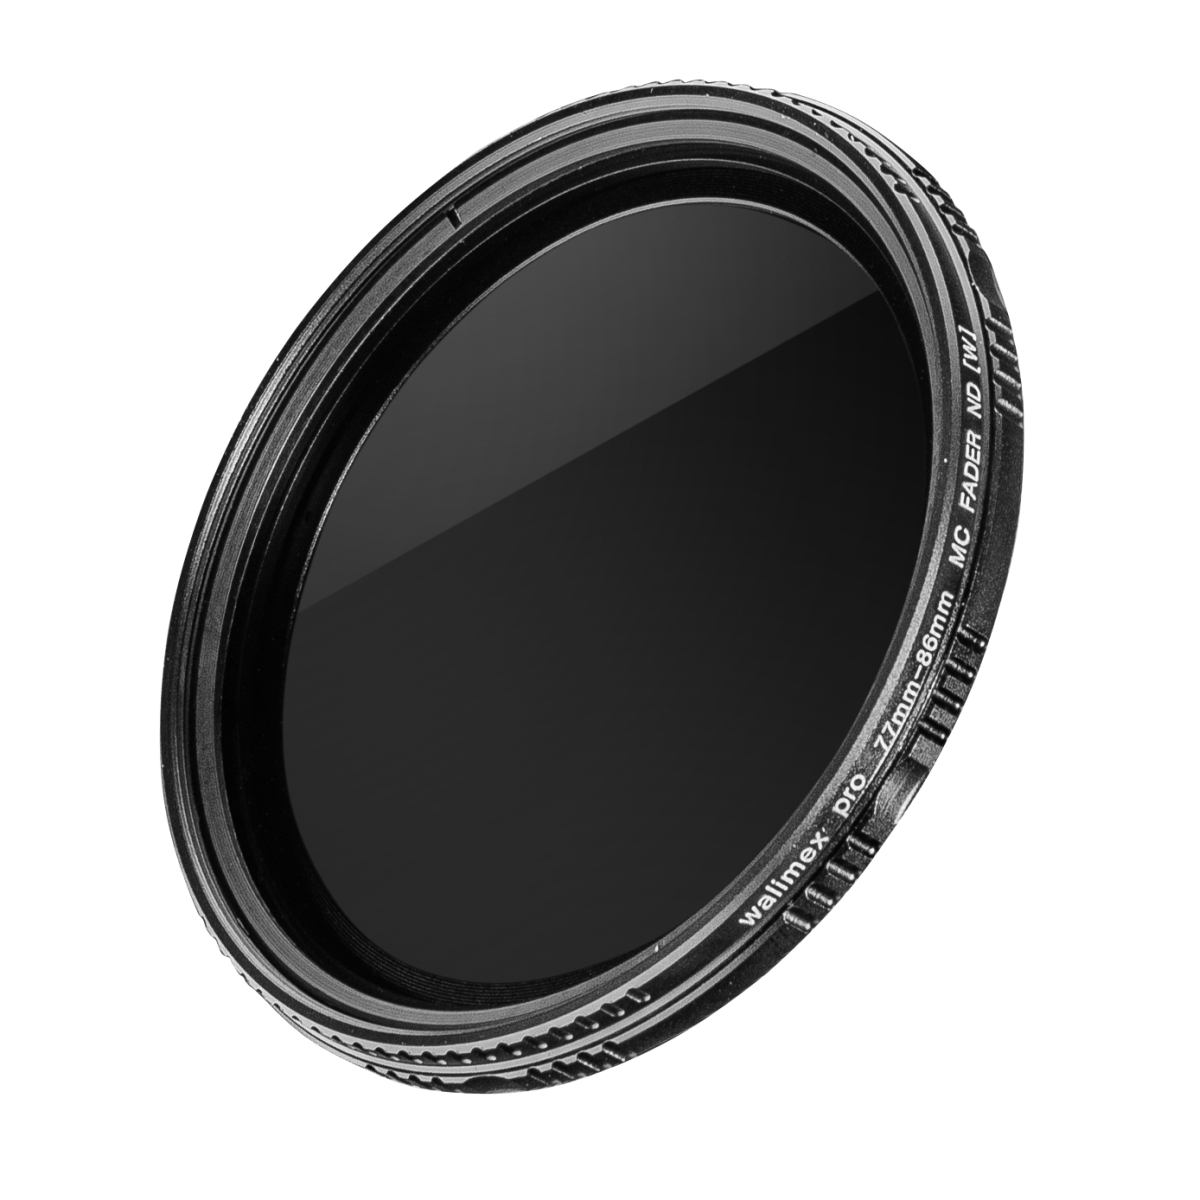 Walimex pro ND-Fader coated 77 mm ND2 - ND400